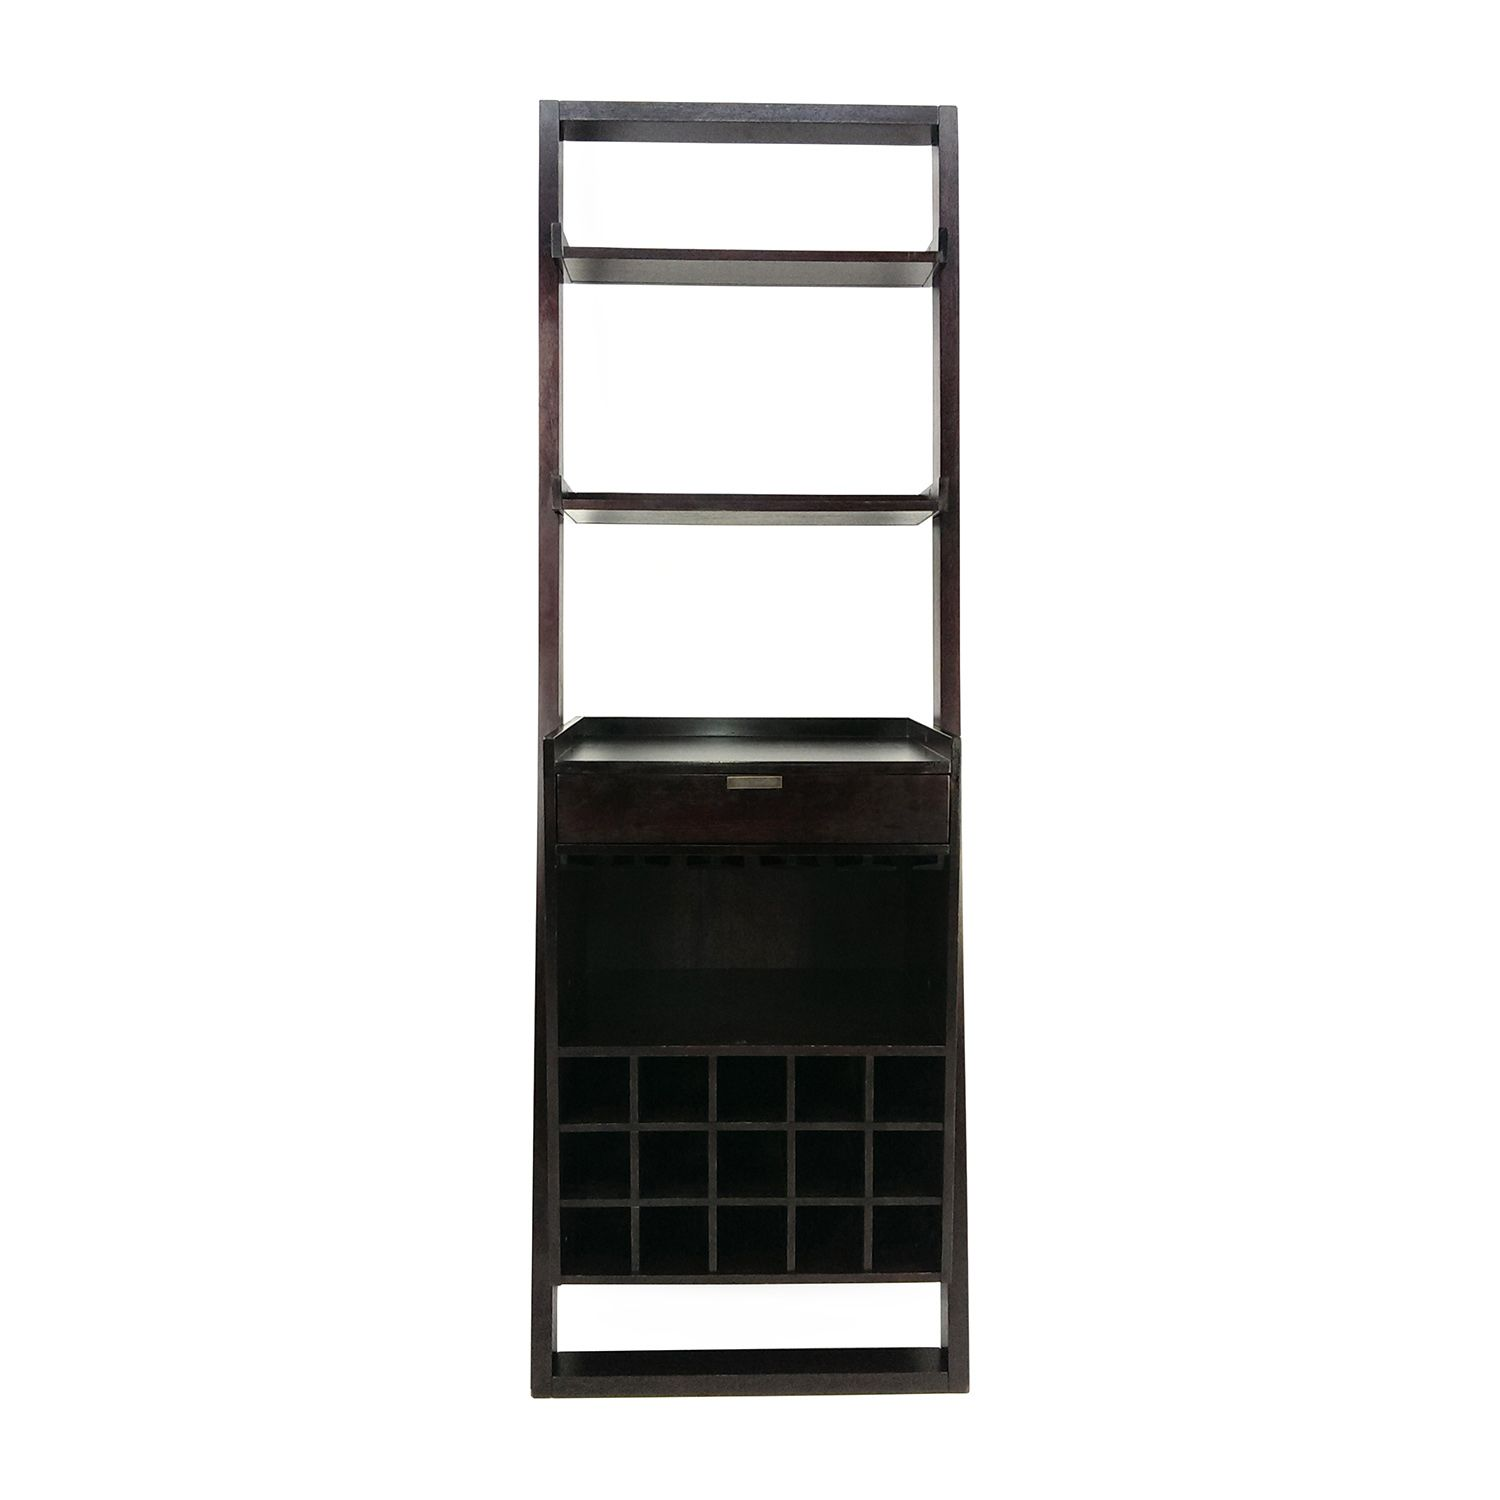 Shop Crate And Barrel Leaning Wine Rack Crate And Barrel Storage